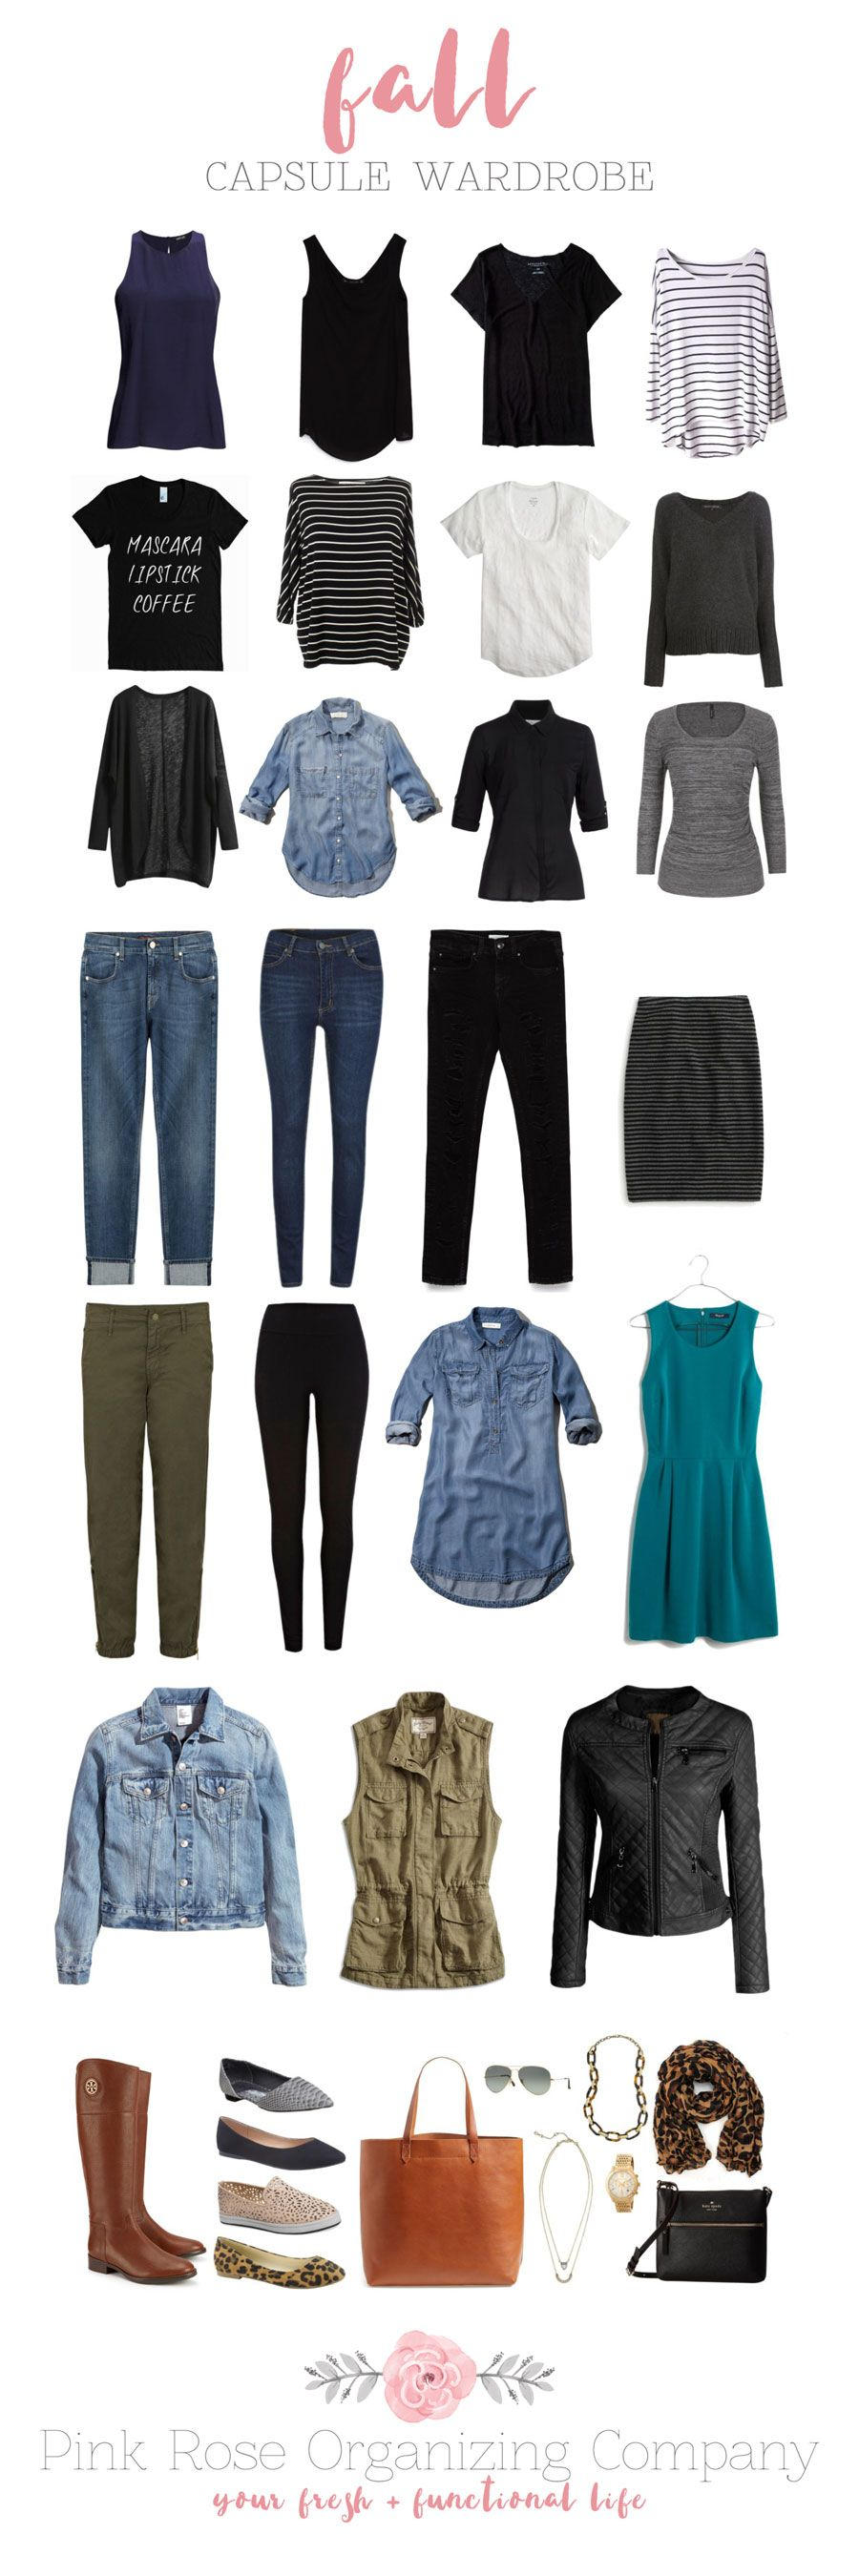 Are You On The Capsule Wardrobe Bandwagon Yet? This Fall